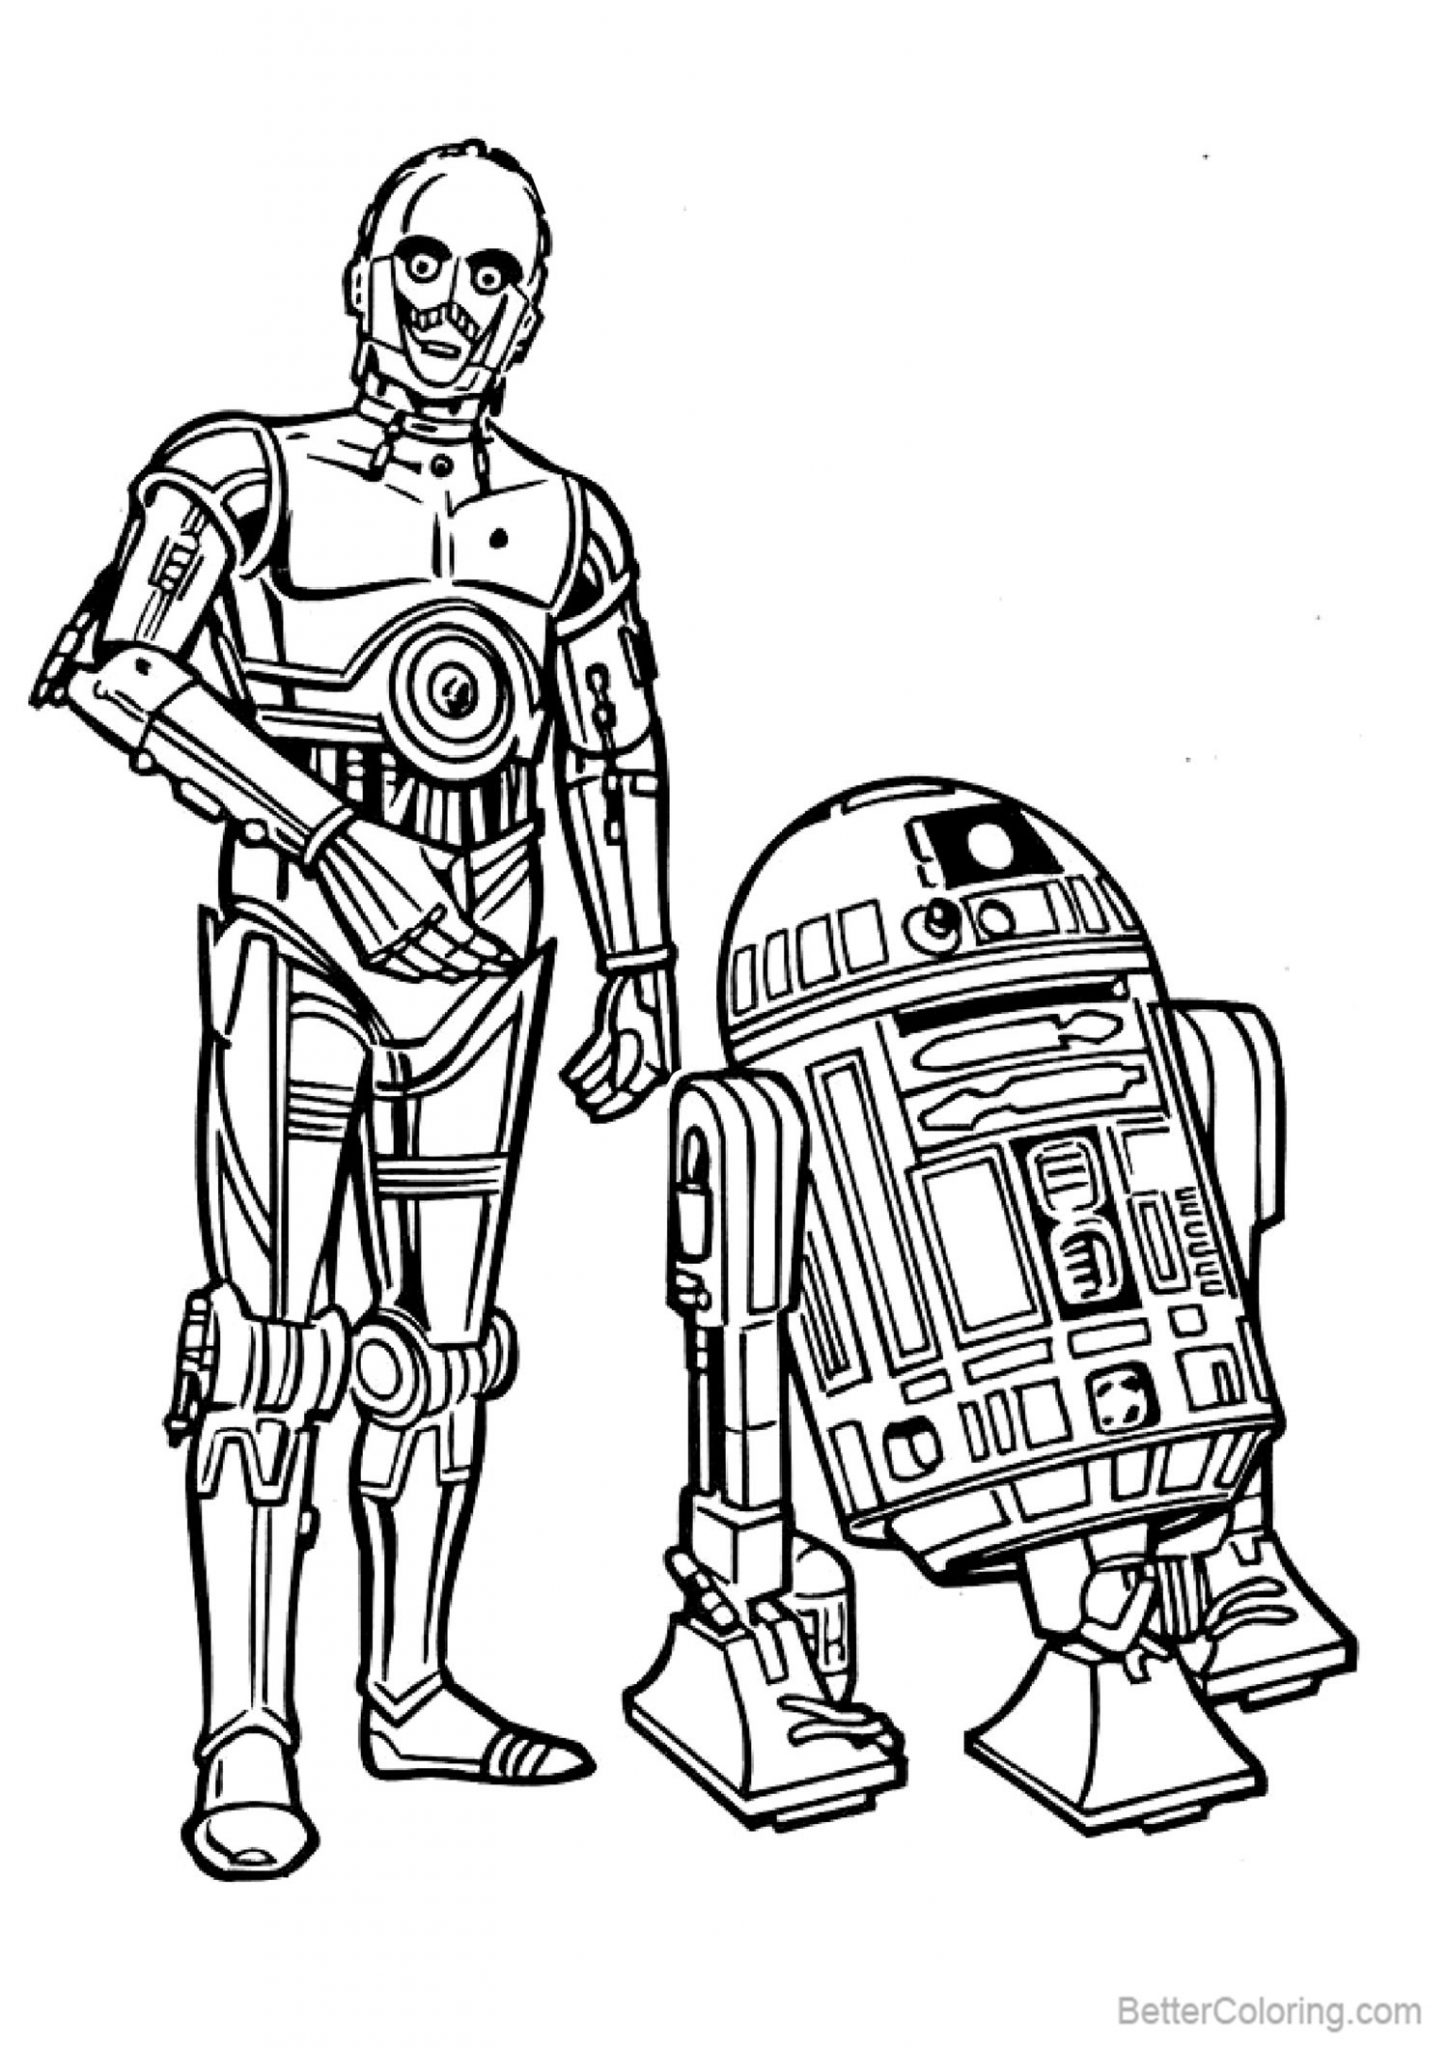 Free R2d2 Coloring Pages with Robot Man printable